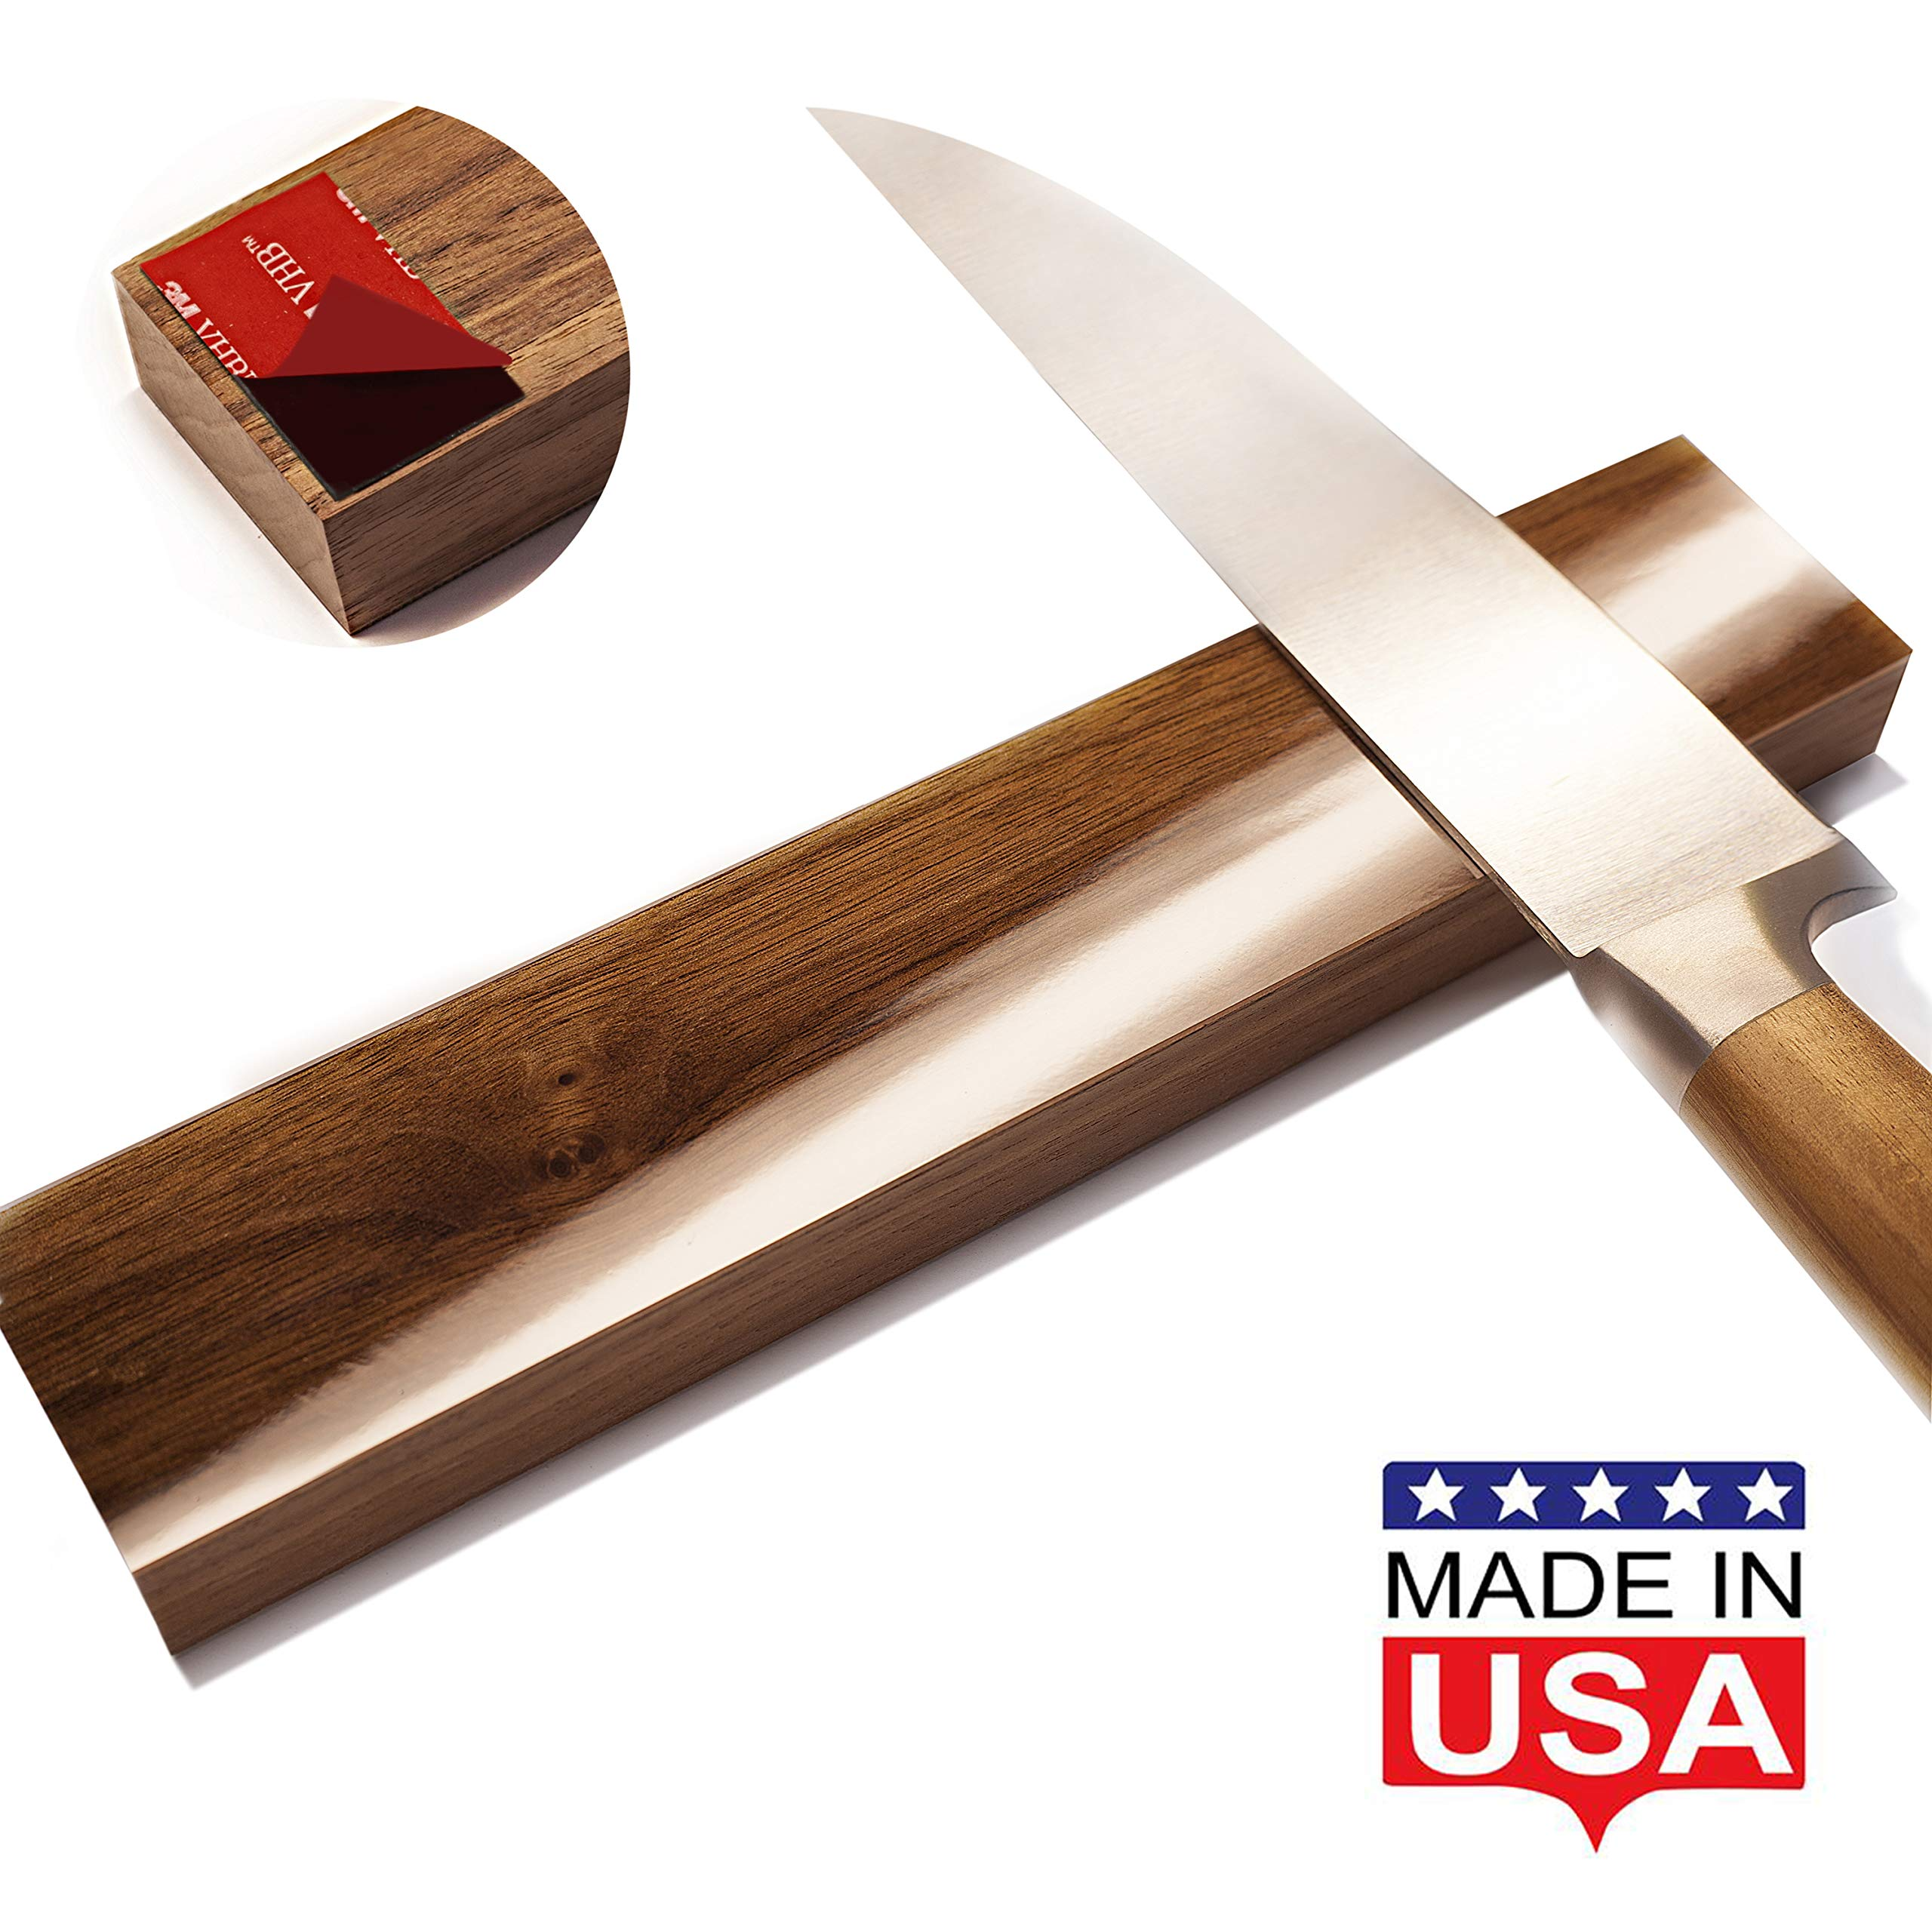 Magnetic Knife Strip Self Adhesive - 10 inch Magnet holder - Utensil Rack for Kitchen or Bar - Wall or Fridge Mount - Walnut Wood - Made in USA by Udge